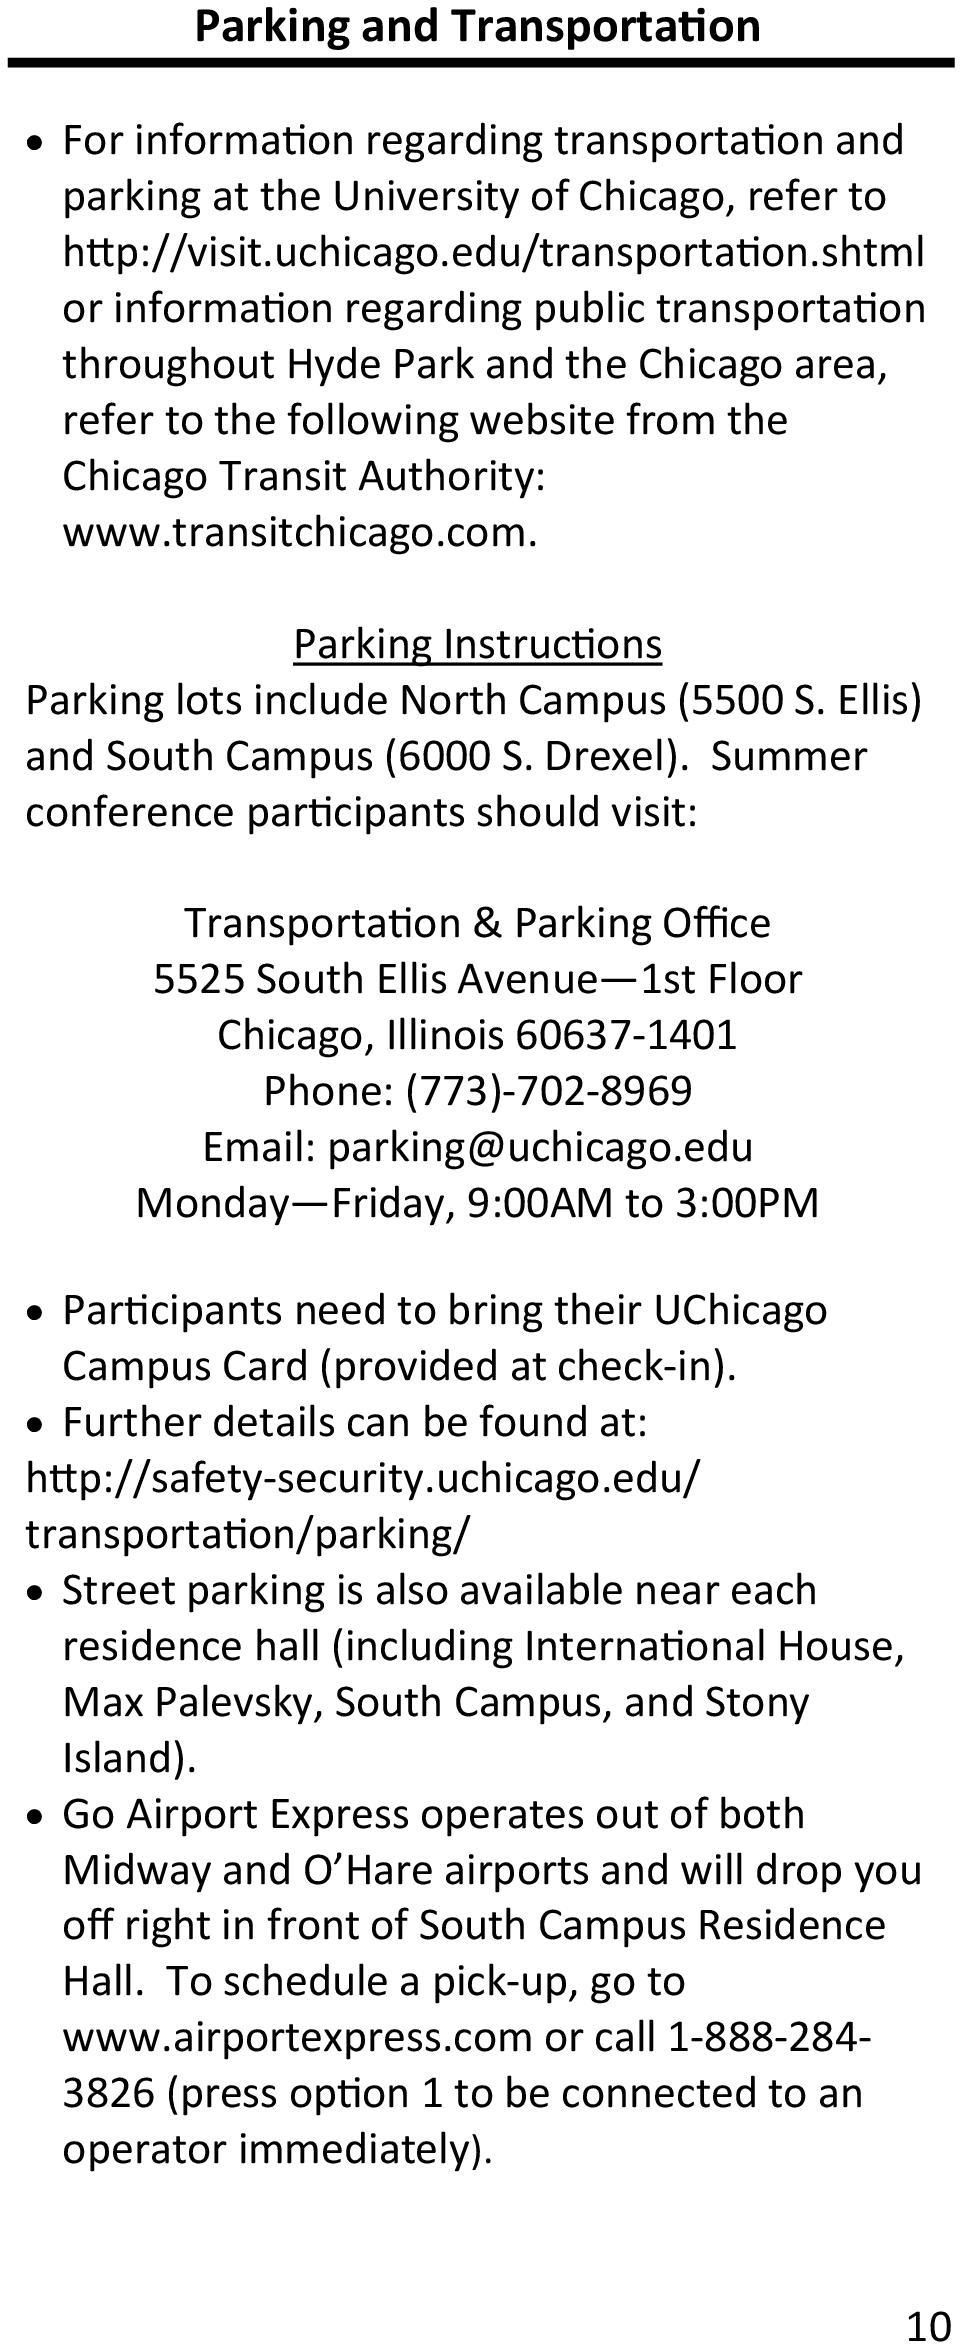 Parking Instructions Parking lots include North Campus (5500 S. Ellis) and South Campus (6000 S. Drexel).